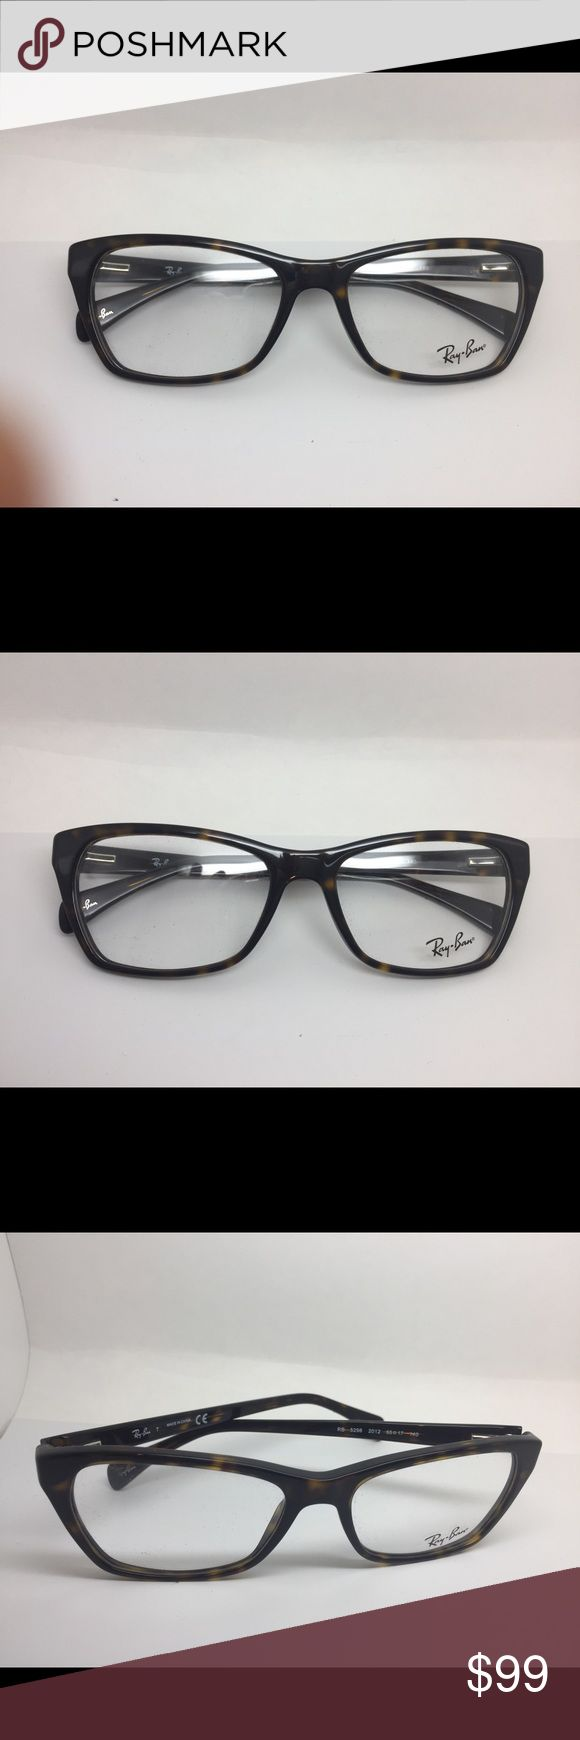 BRAND NEW DESIGNER AUTHENTIC RAY BAN EYEGLASSES. BRAND NEW DESIGNER AUTHENTIC RAY BAN EYEGLASSES. MODEL RB 5298 color 2012. CAT-EYE SHAPE IN TORTOISE COLOR ACETATE MATERIAL FRAME. PRESCRIPTION FRIENDLY. Ray-Ban Accessories Glasses